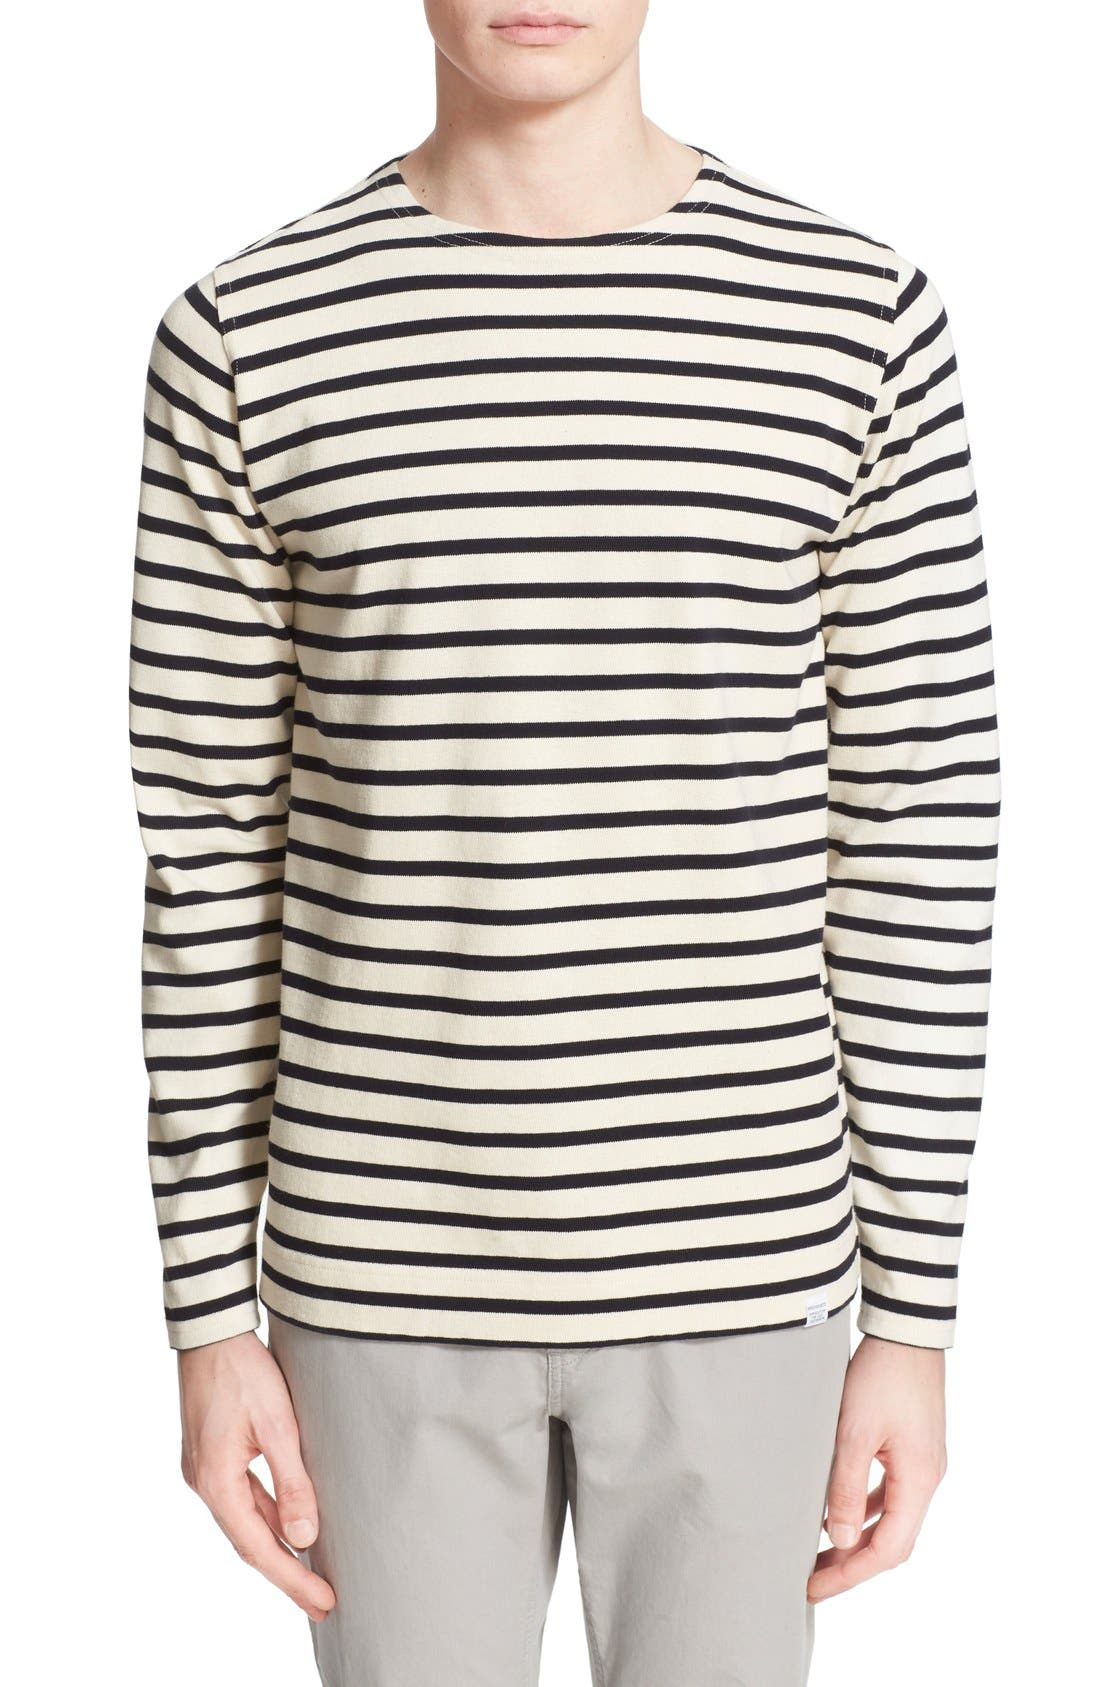 Main Image - Norse Projects 'Godtfred' Stripe Long Sleeve T-Shirt